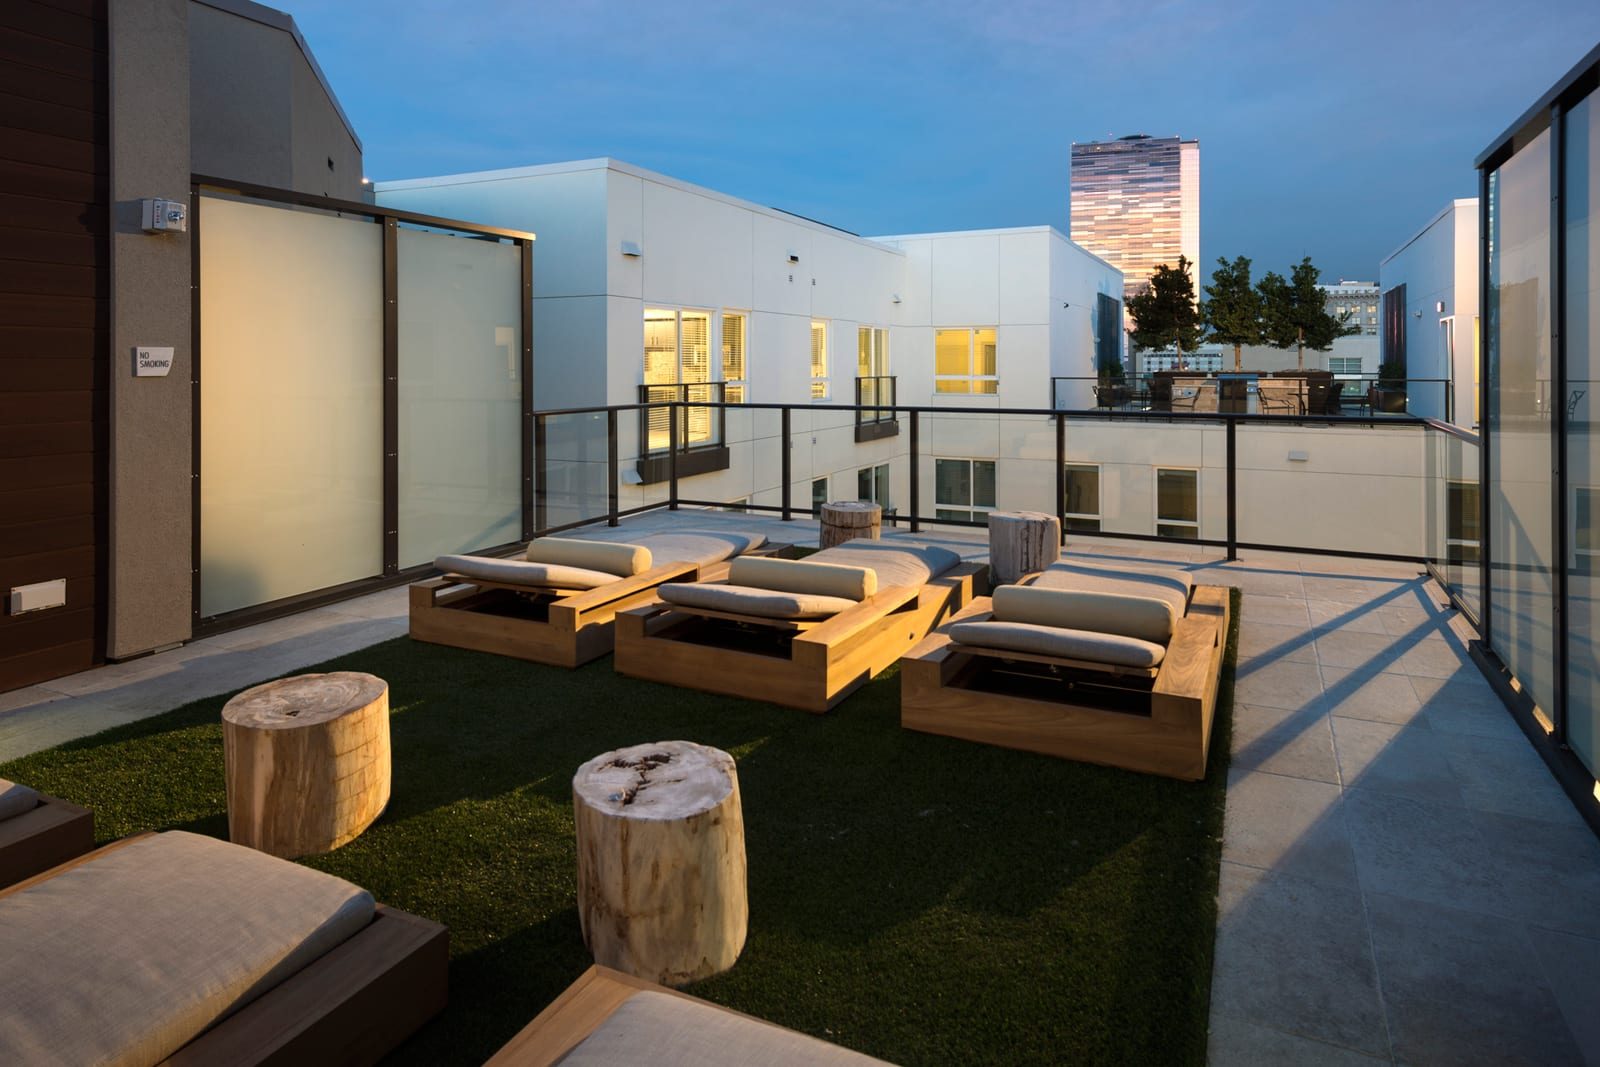 Three Rooftop Sky Decks with City Views at 1000 Grand by Windsor, 1000 S Grand Ave, Los Angeles